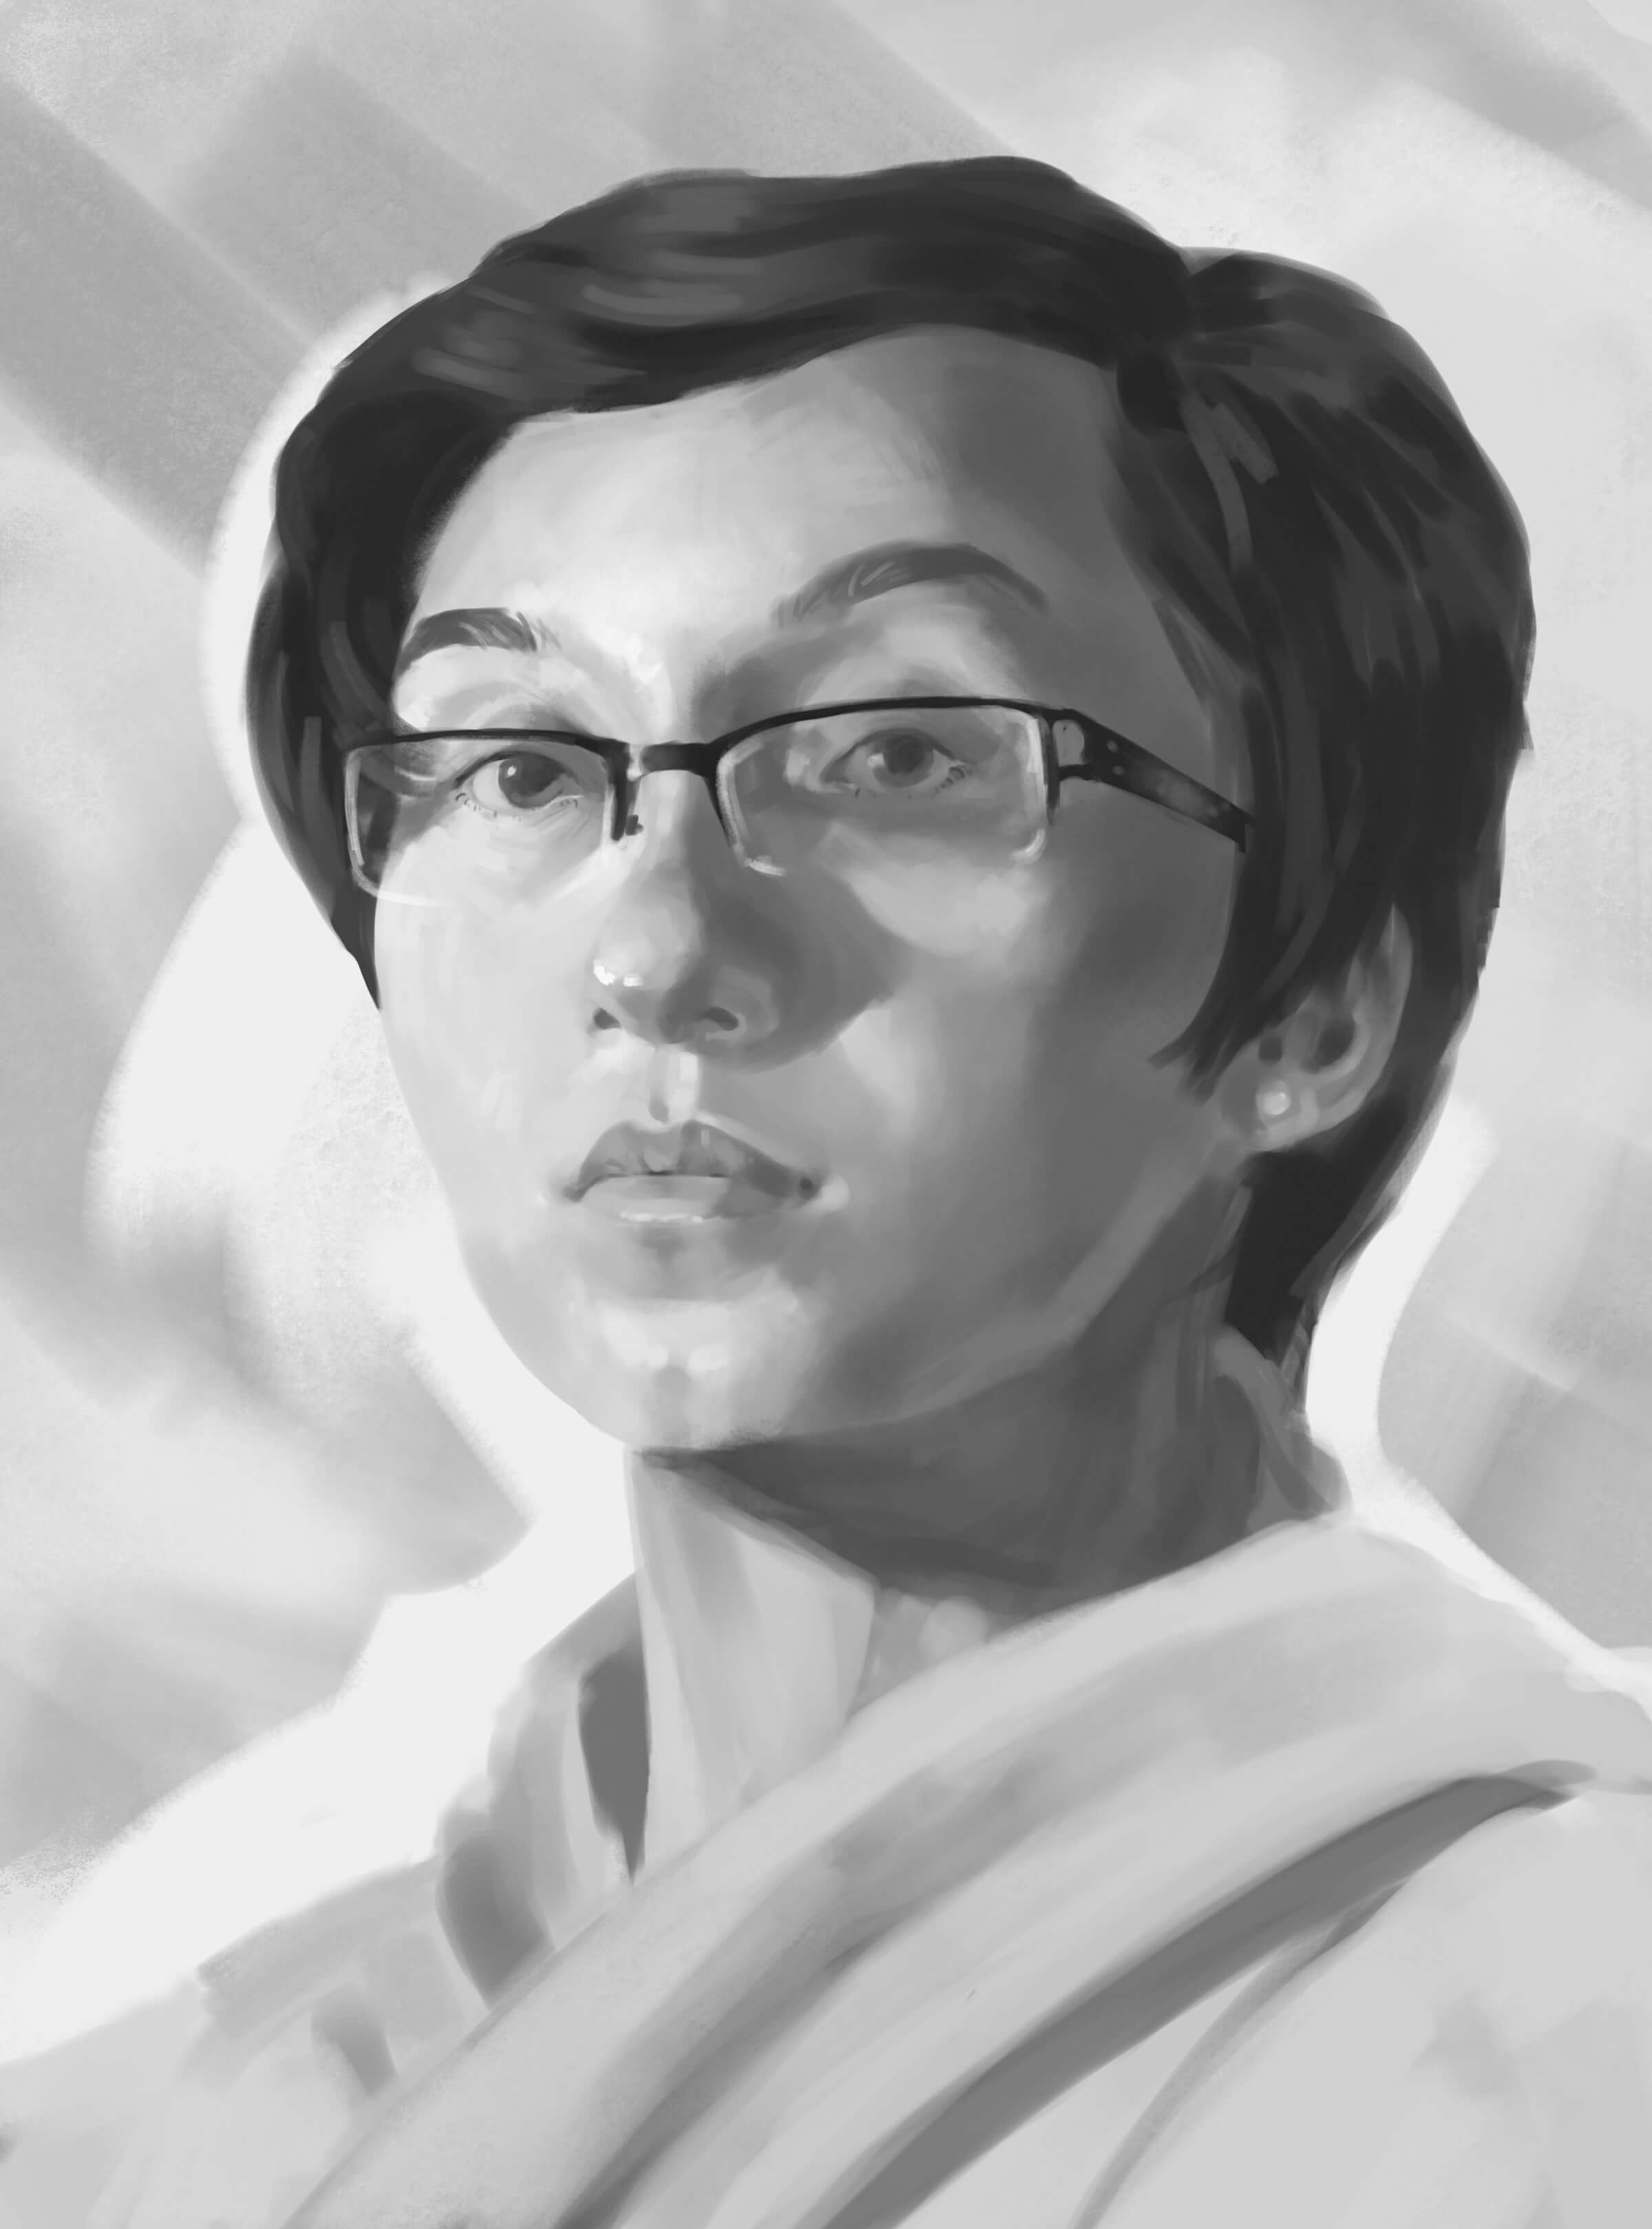 traditional painting portrait of a korean woman with glasses and short hair